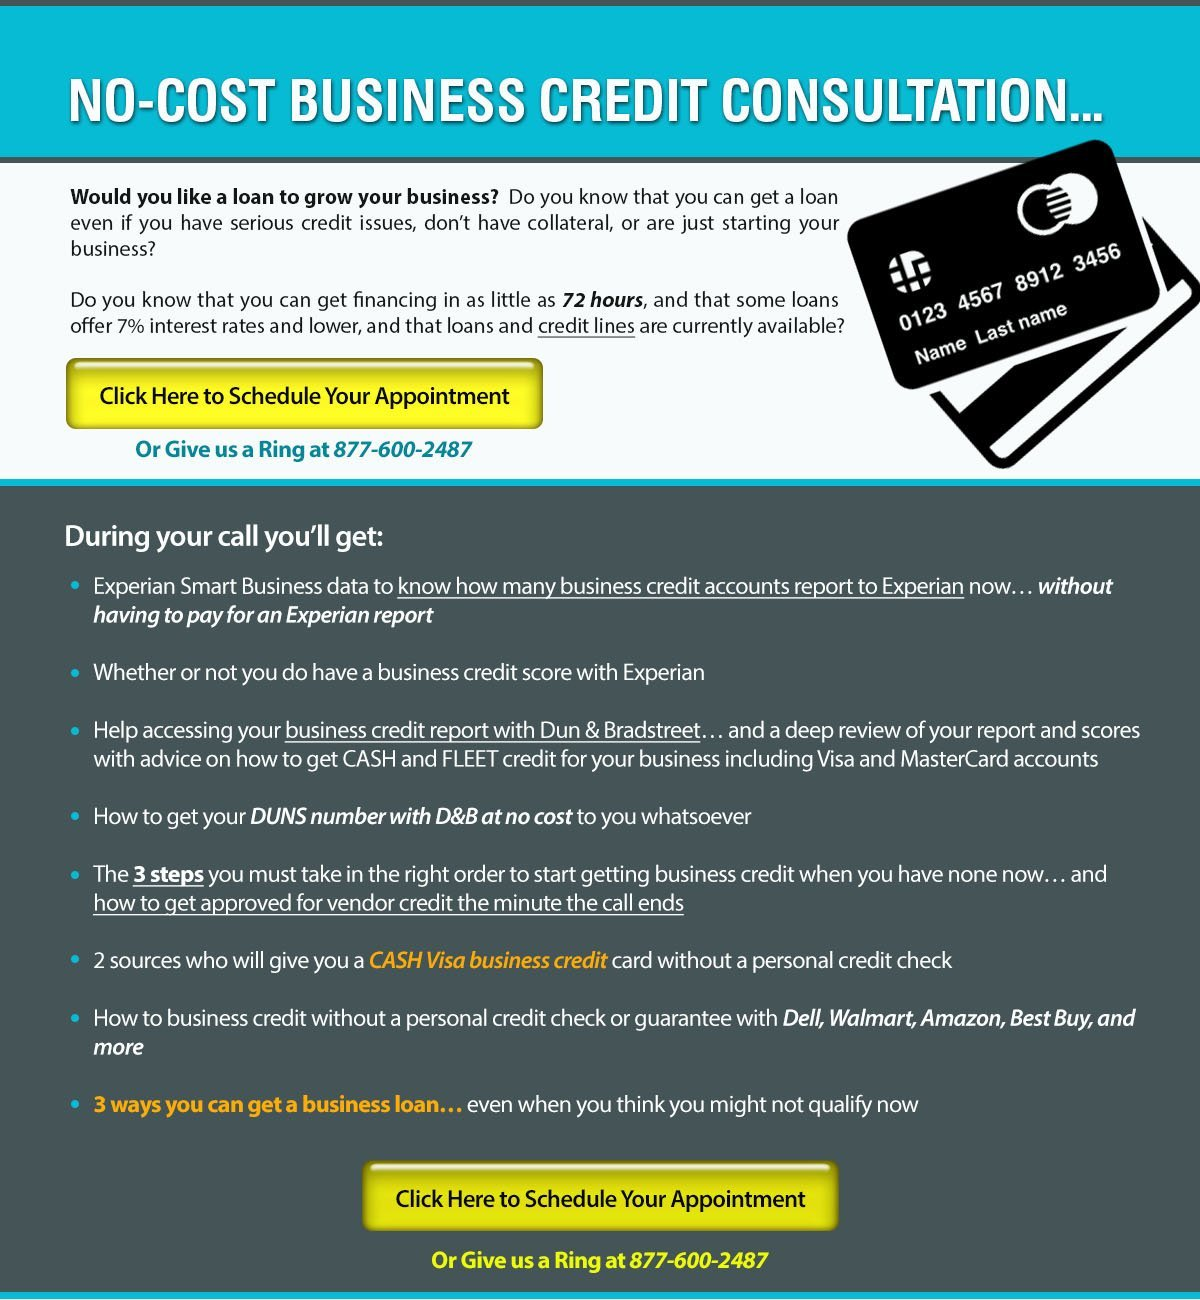 Free Business Credit Consultation - Credit SuiteCredit Suite